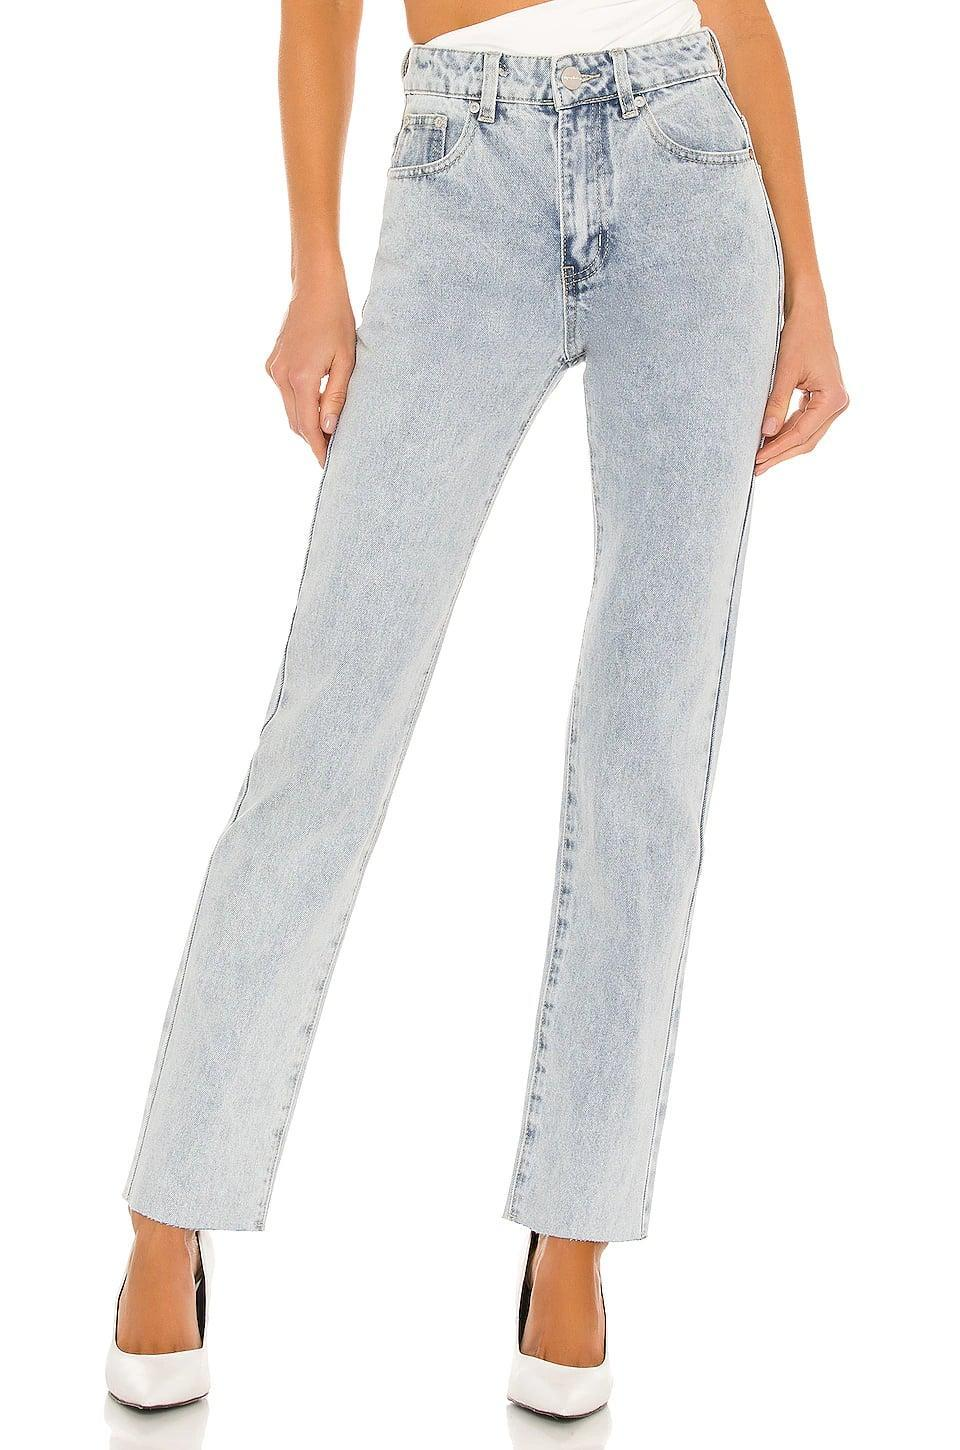 """<p>""""The <span>Superdown Dylan Straight Denim Jeans</span> ($72) are the pair I've been living in because they basically feel like sweats. Especially coupled with a spaghetti tank, I love the early 2000s vibes they emit."""" - Sarah Wasilak, editor, Fashion</p>"""